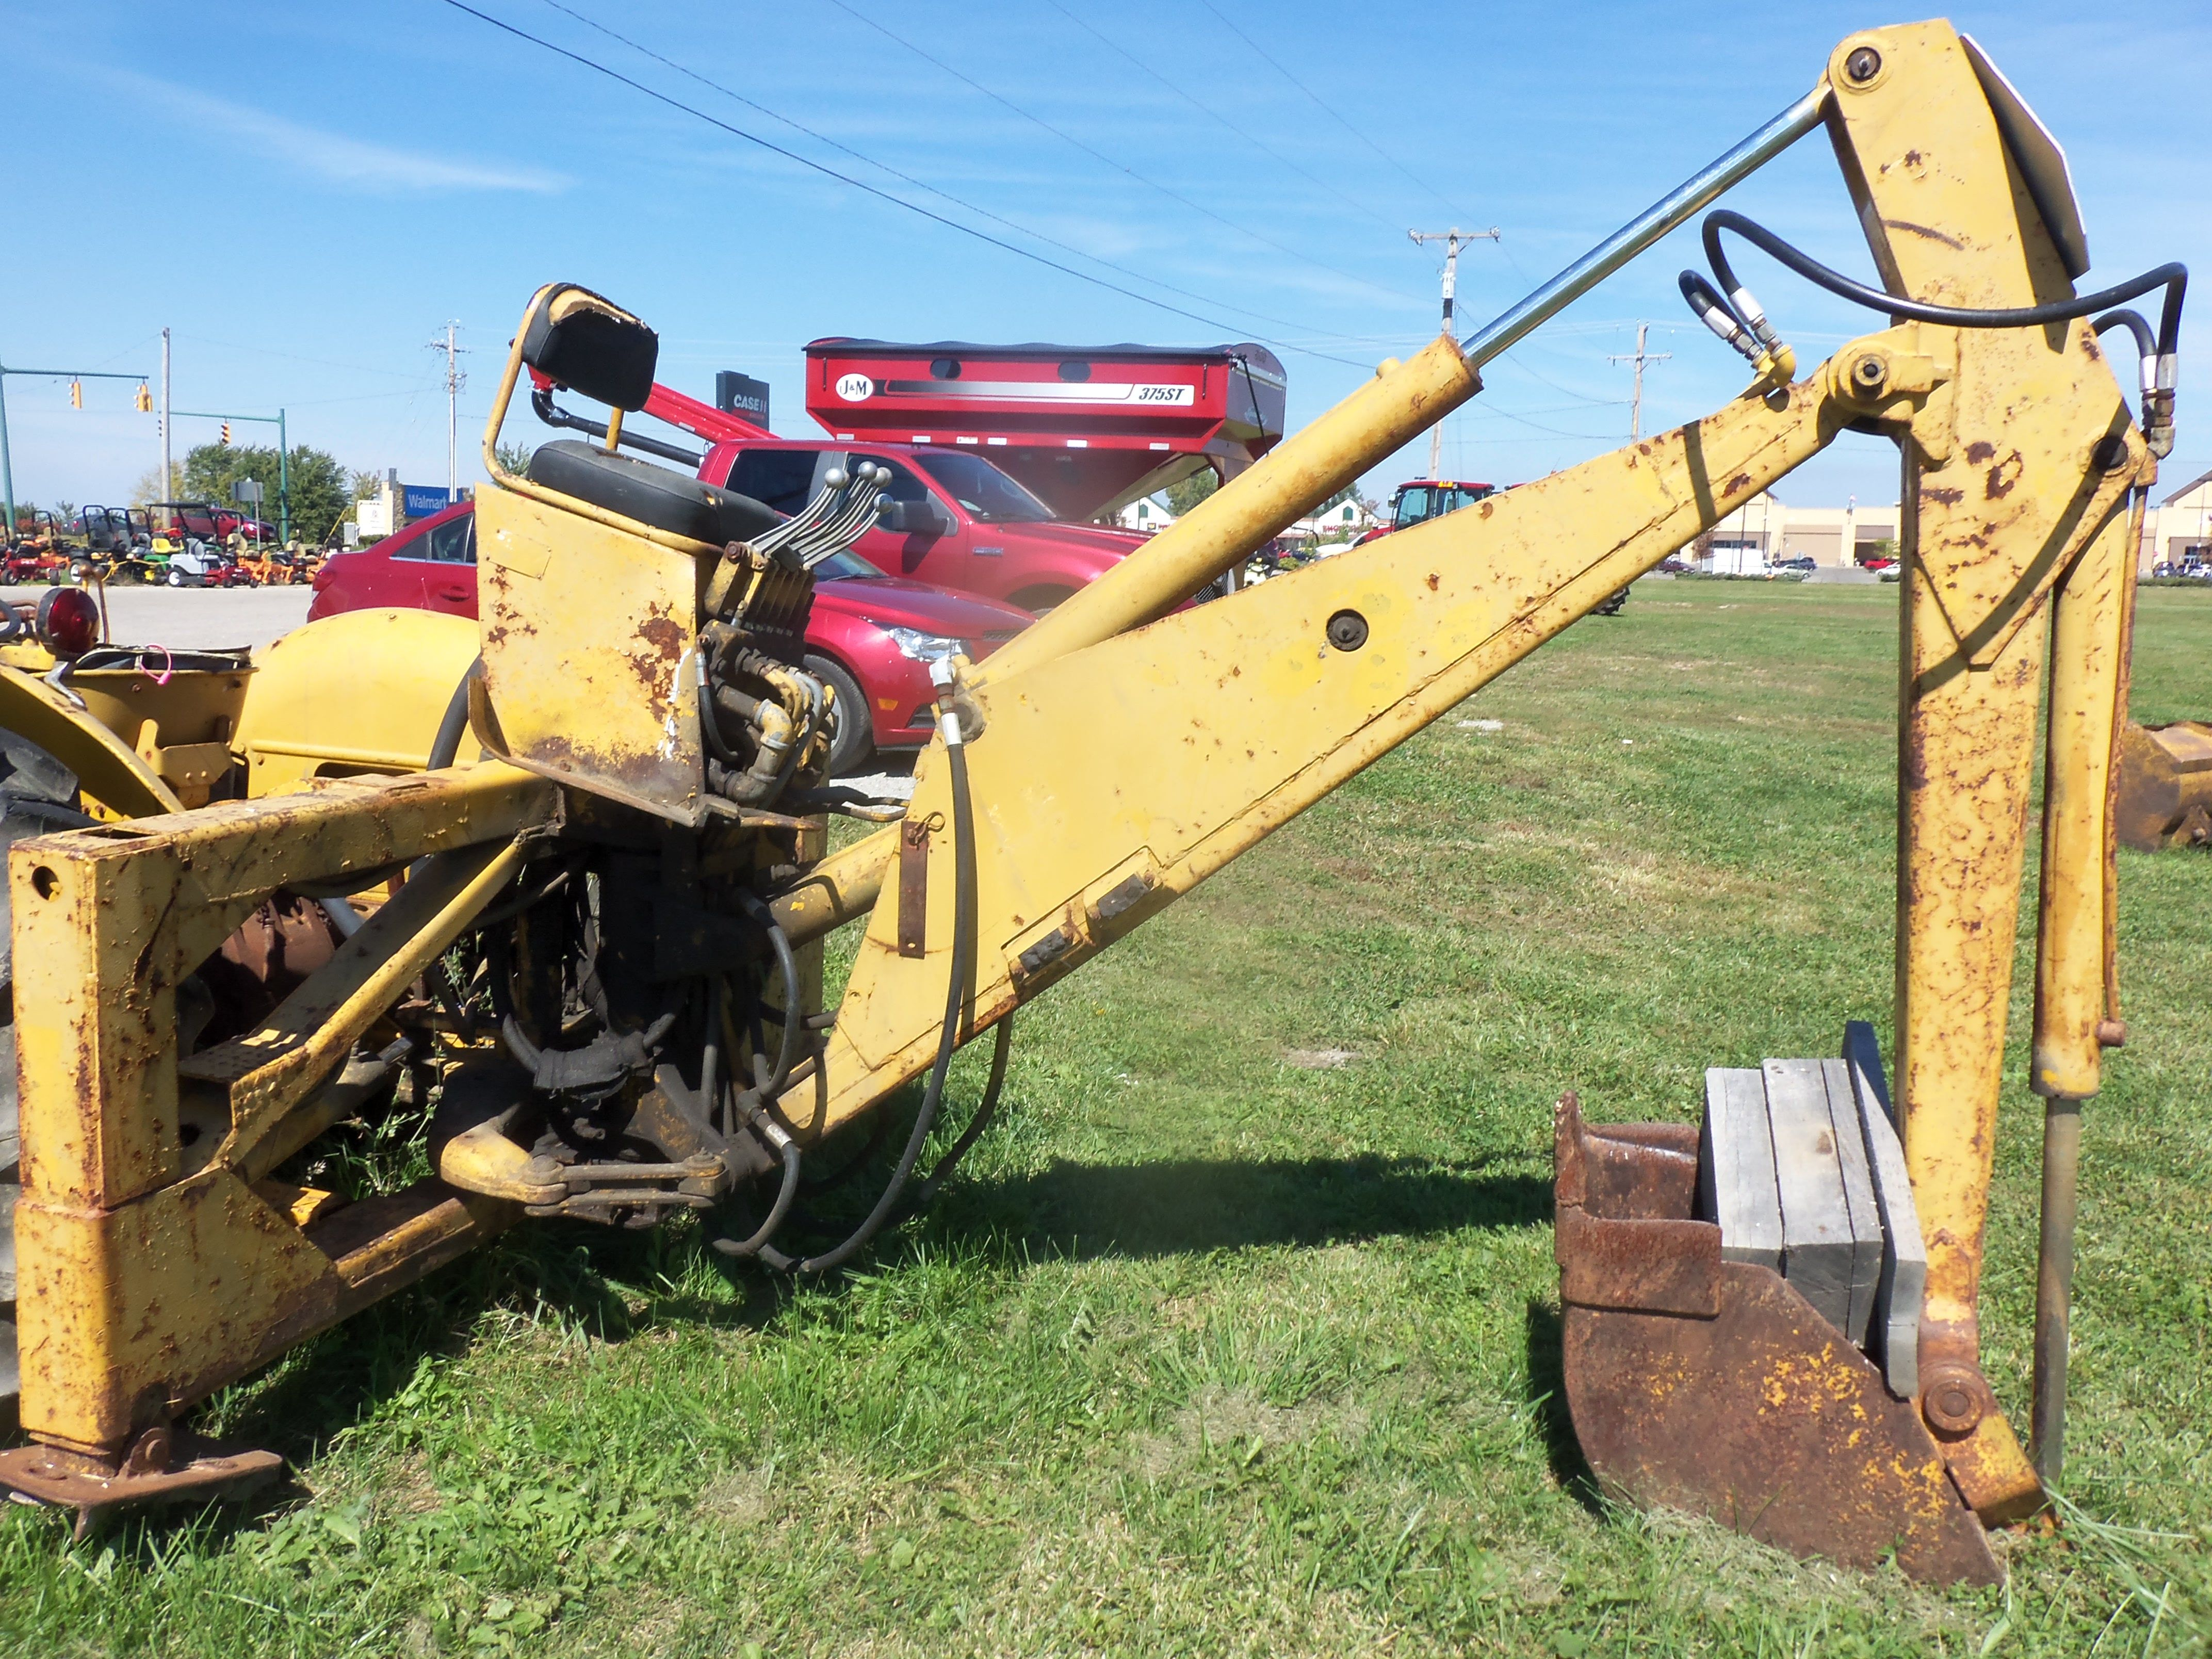 Massey Ferguson 2135 backhoe with boom & stick This is based